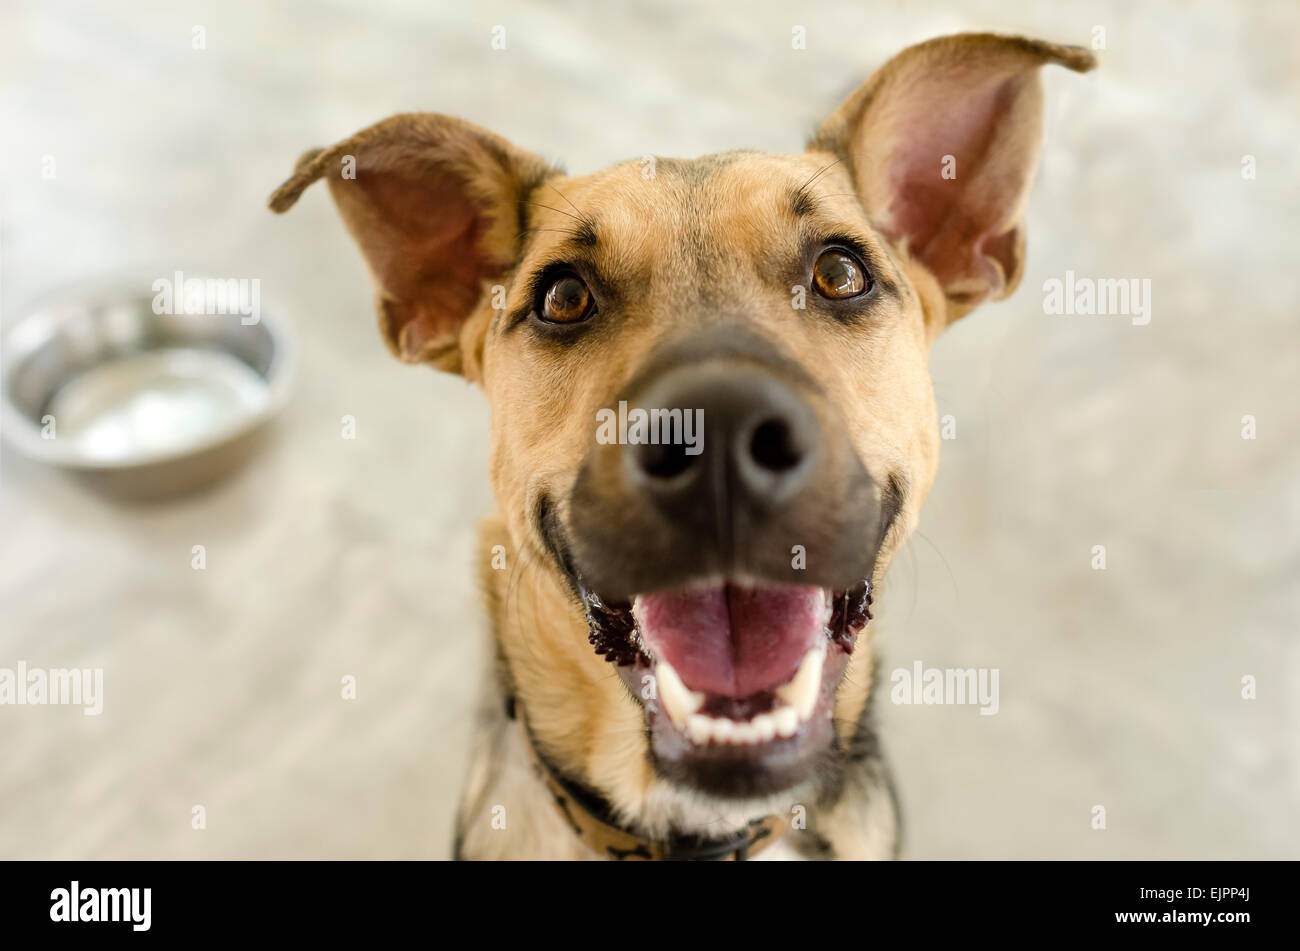 A happy dog is smiling waiting for his bowl to be filled. - Stock Image